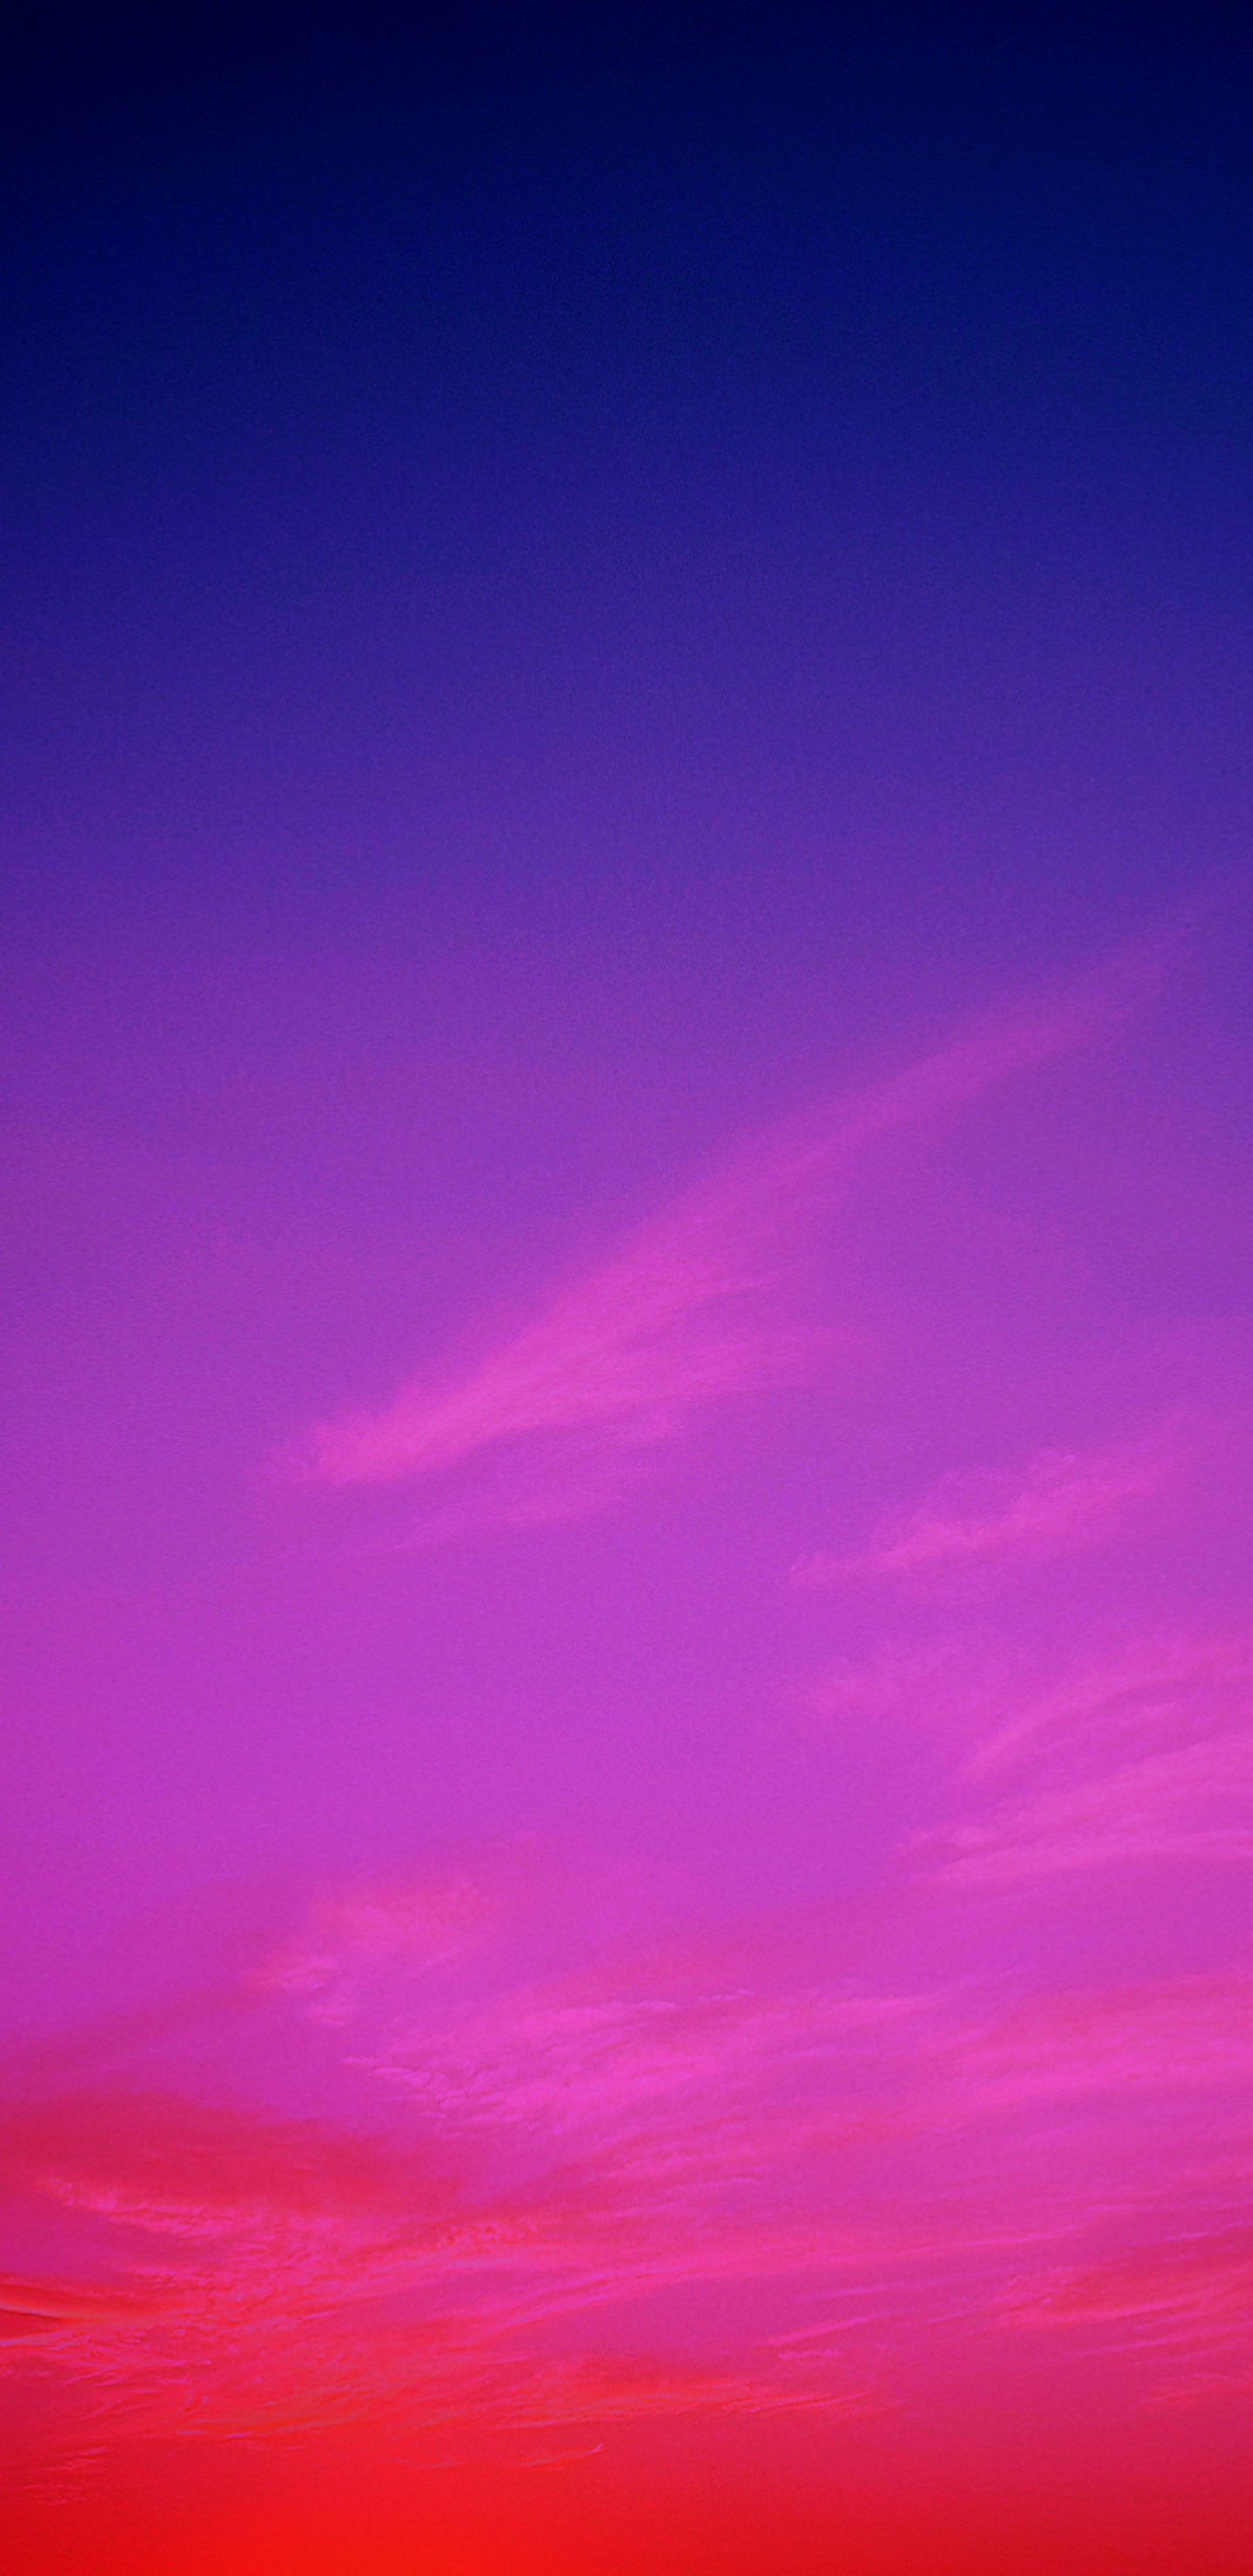 1440x2960 Purple Sky Samsung Galaxy Note 9 8 S9 S8 S8 Qhd Hd 4k Wallpapers Images Backgrounds Photos And Pictures